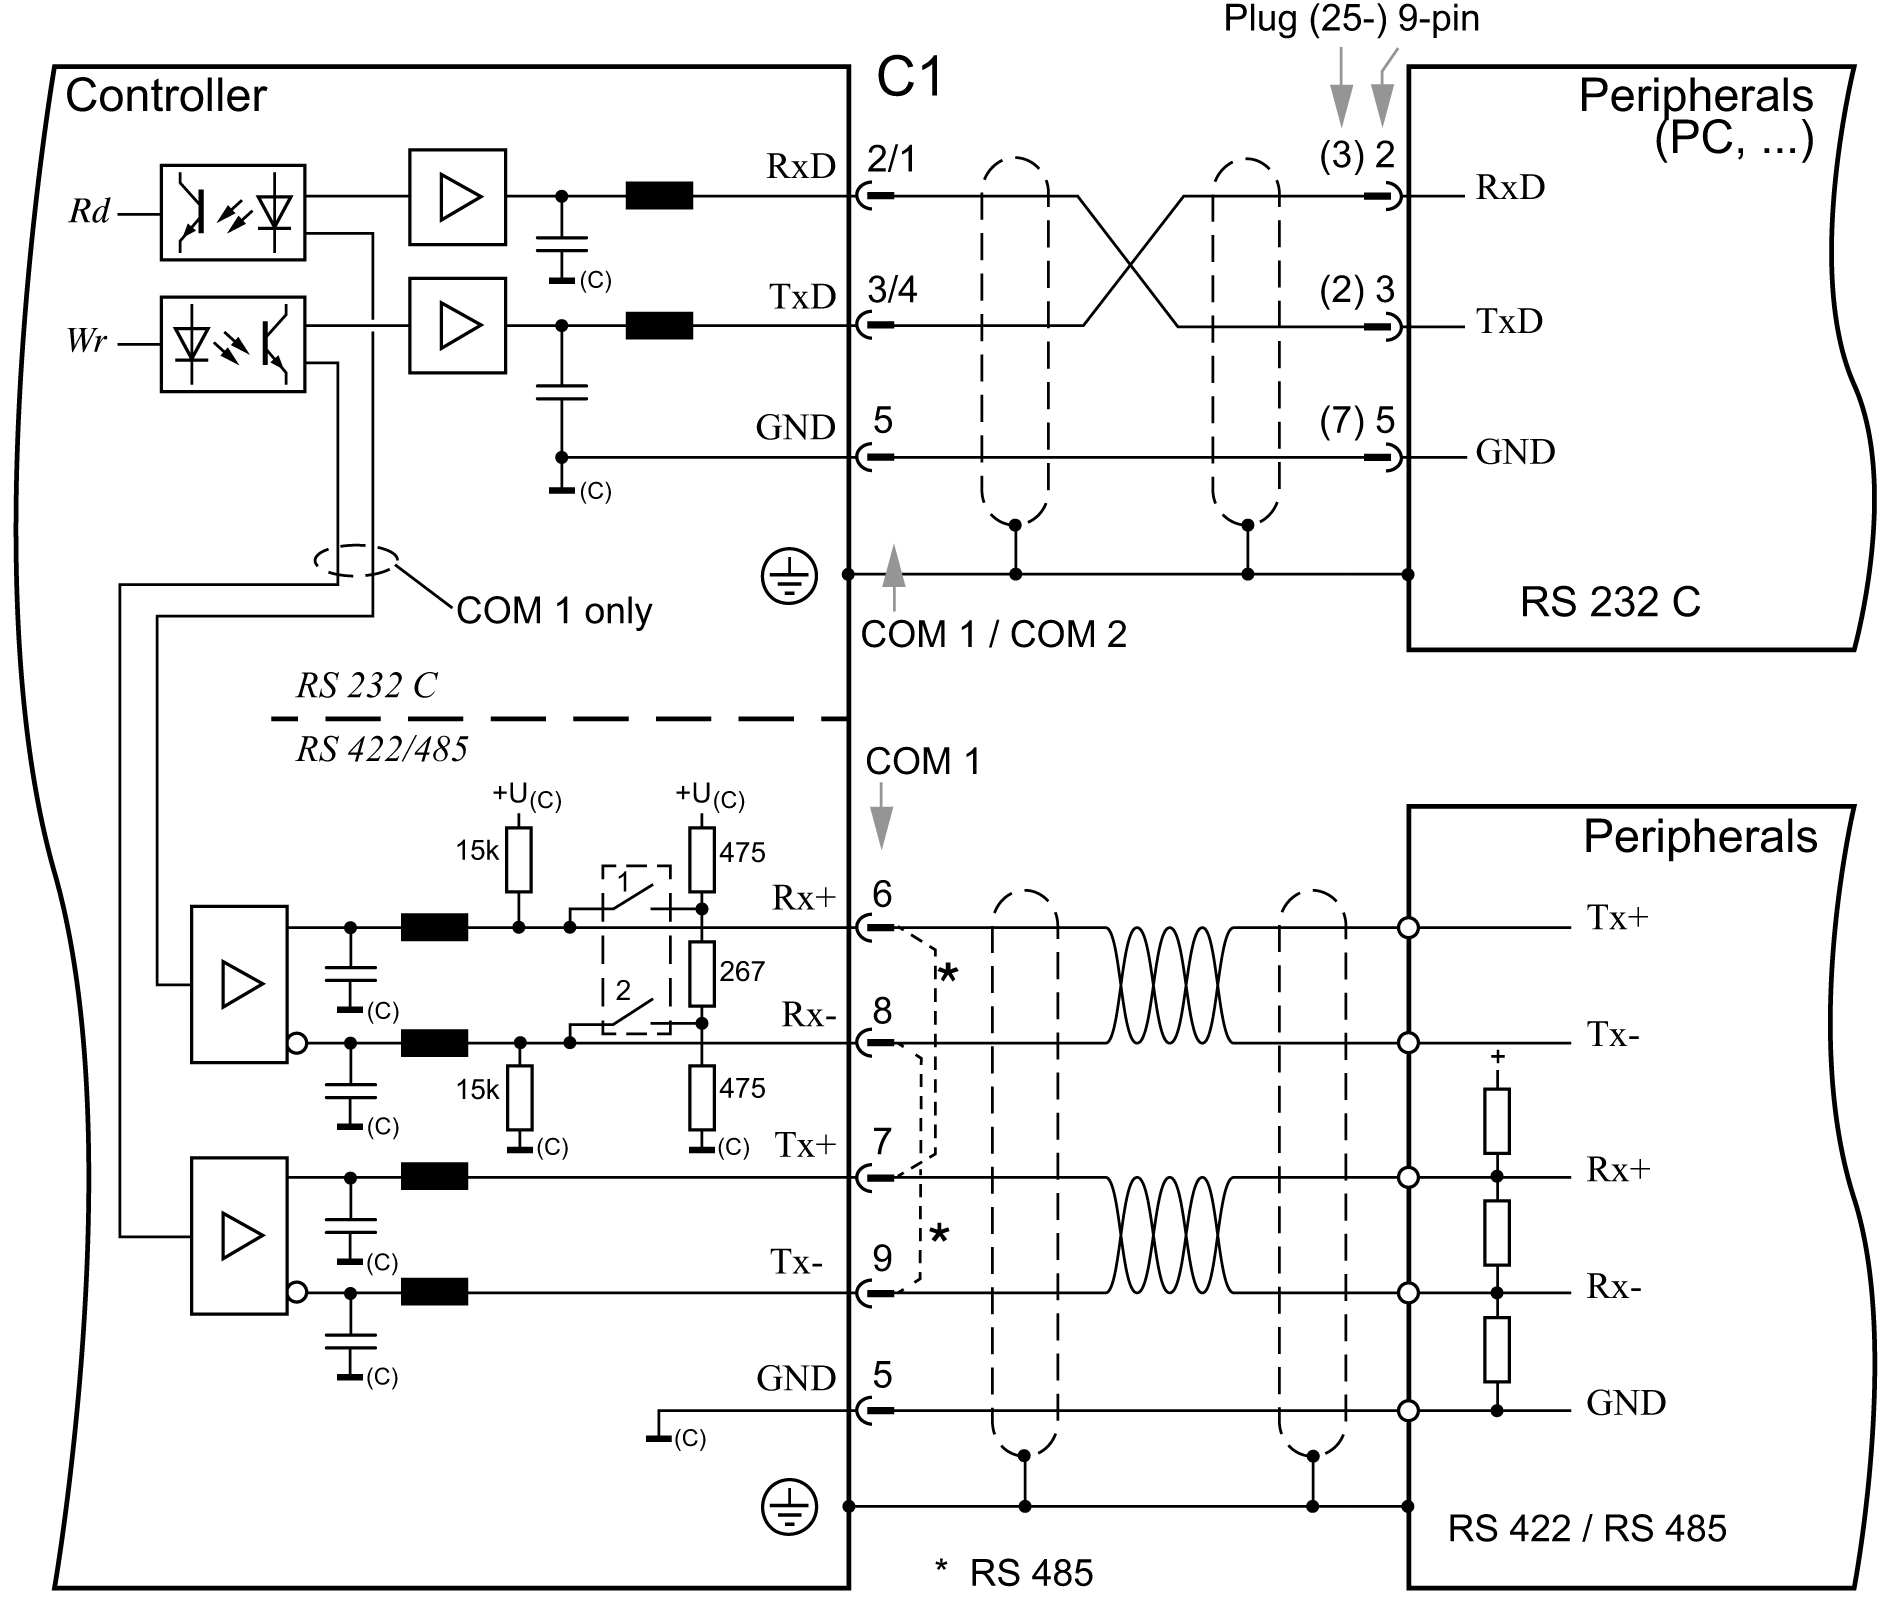 Gel 8251 Compact Controller Lenord Bauer Rail Speed Sensors Battery Switch Wiring Diagram Besides Rs 422 Additionally Old Serial Interfaces C1